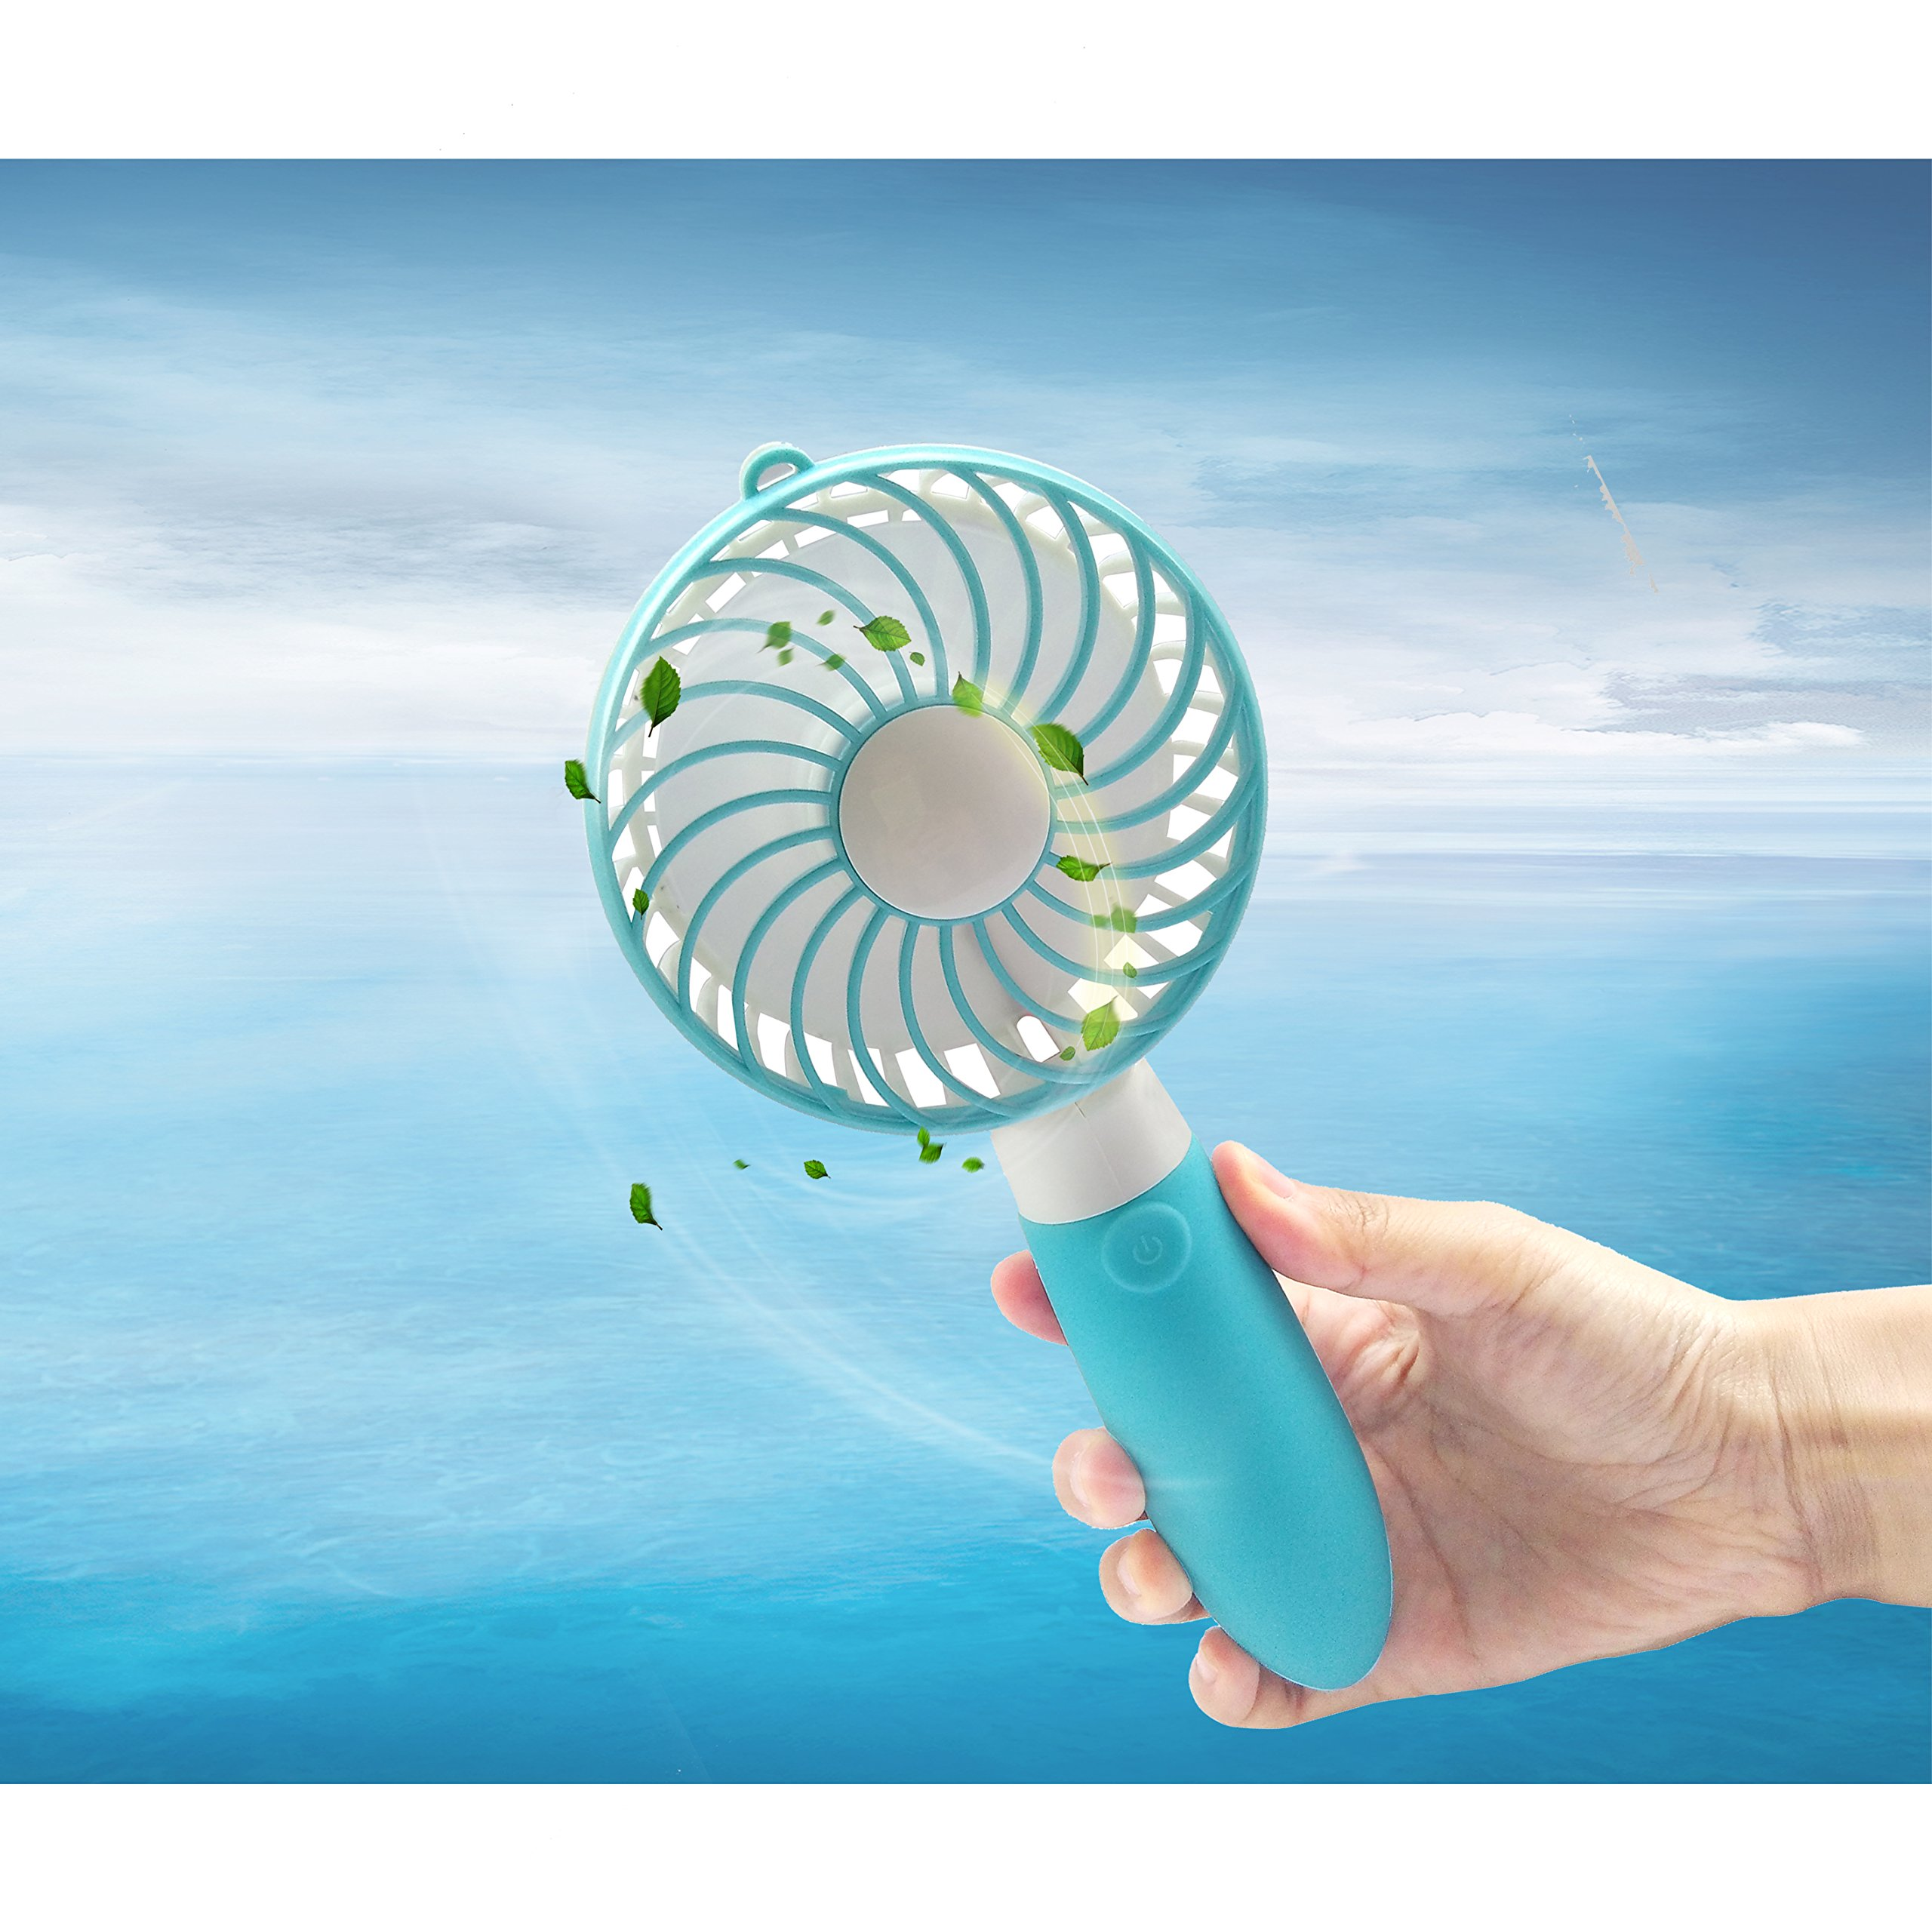 Haraqi Handheld Fan Mini USB Fan Electric Personal Portable Handfan with Rechargeable Battery Adjustable 3 Speeds Outdoor Fan for Home Travel … (Blue)